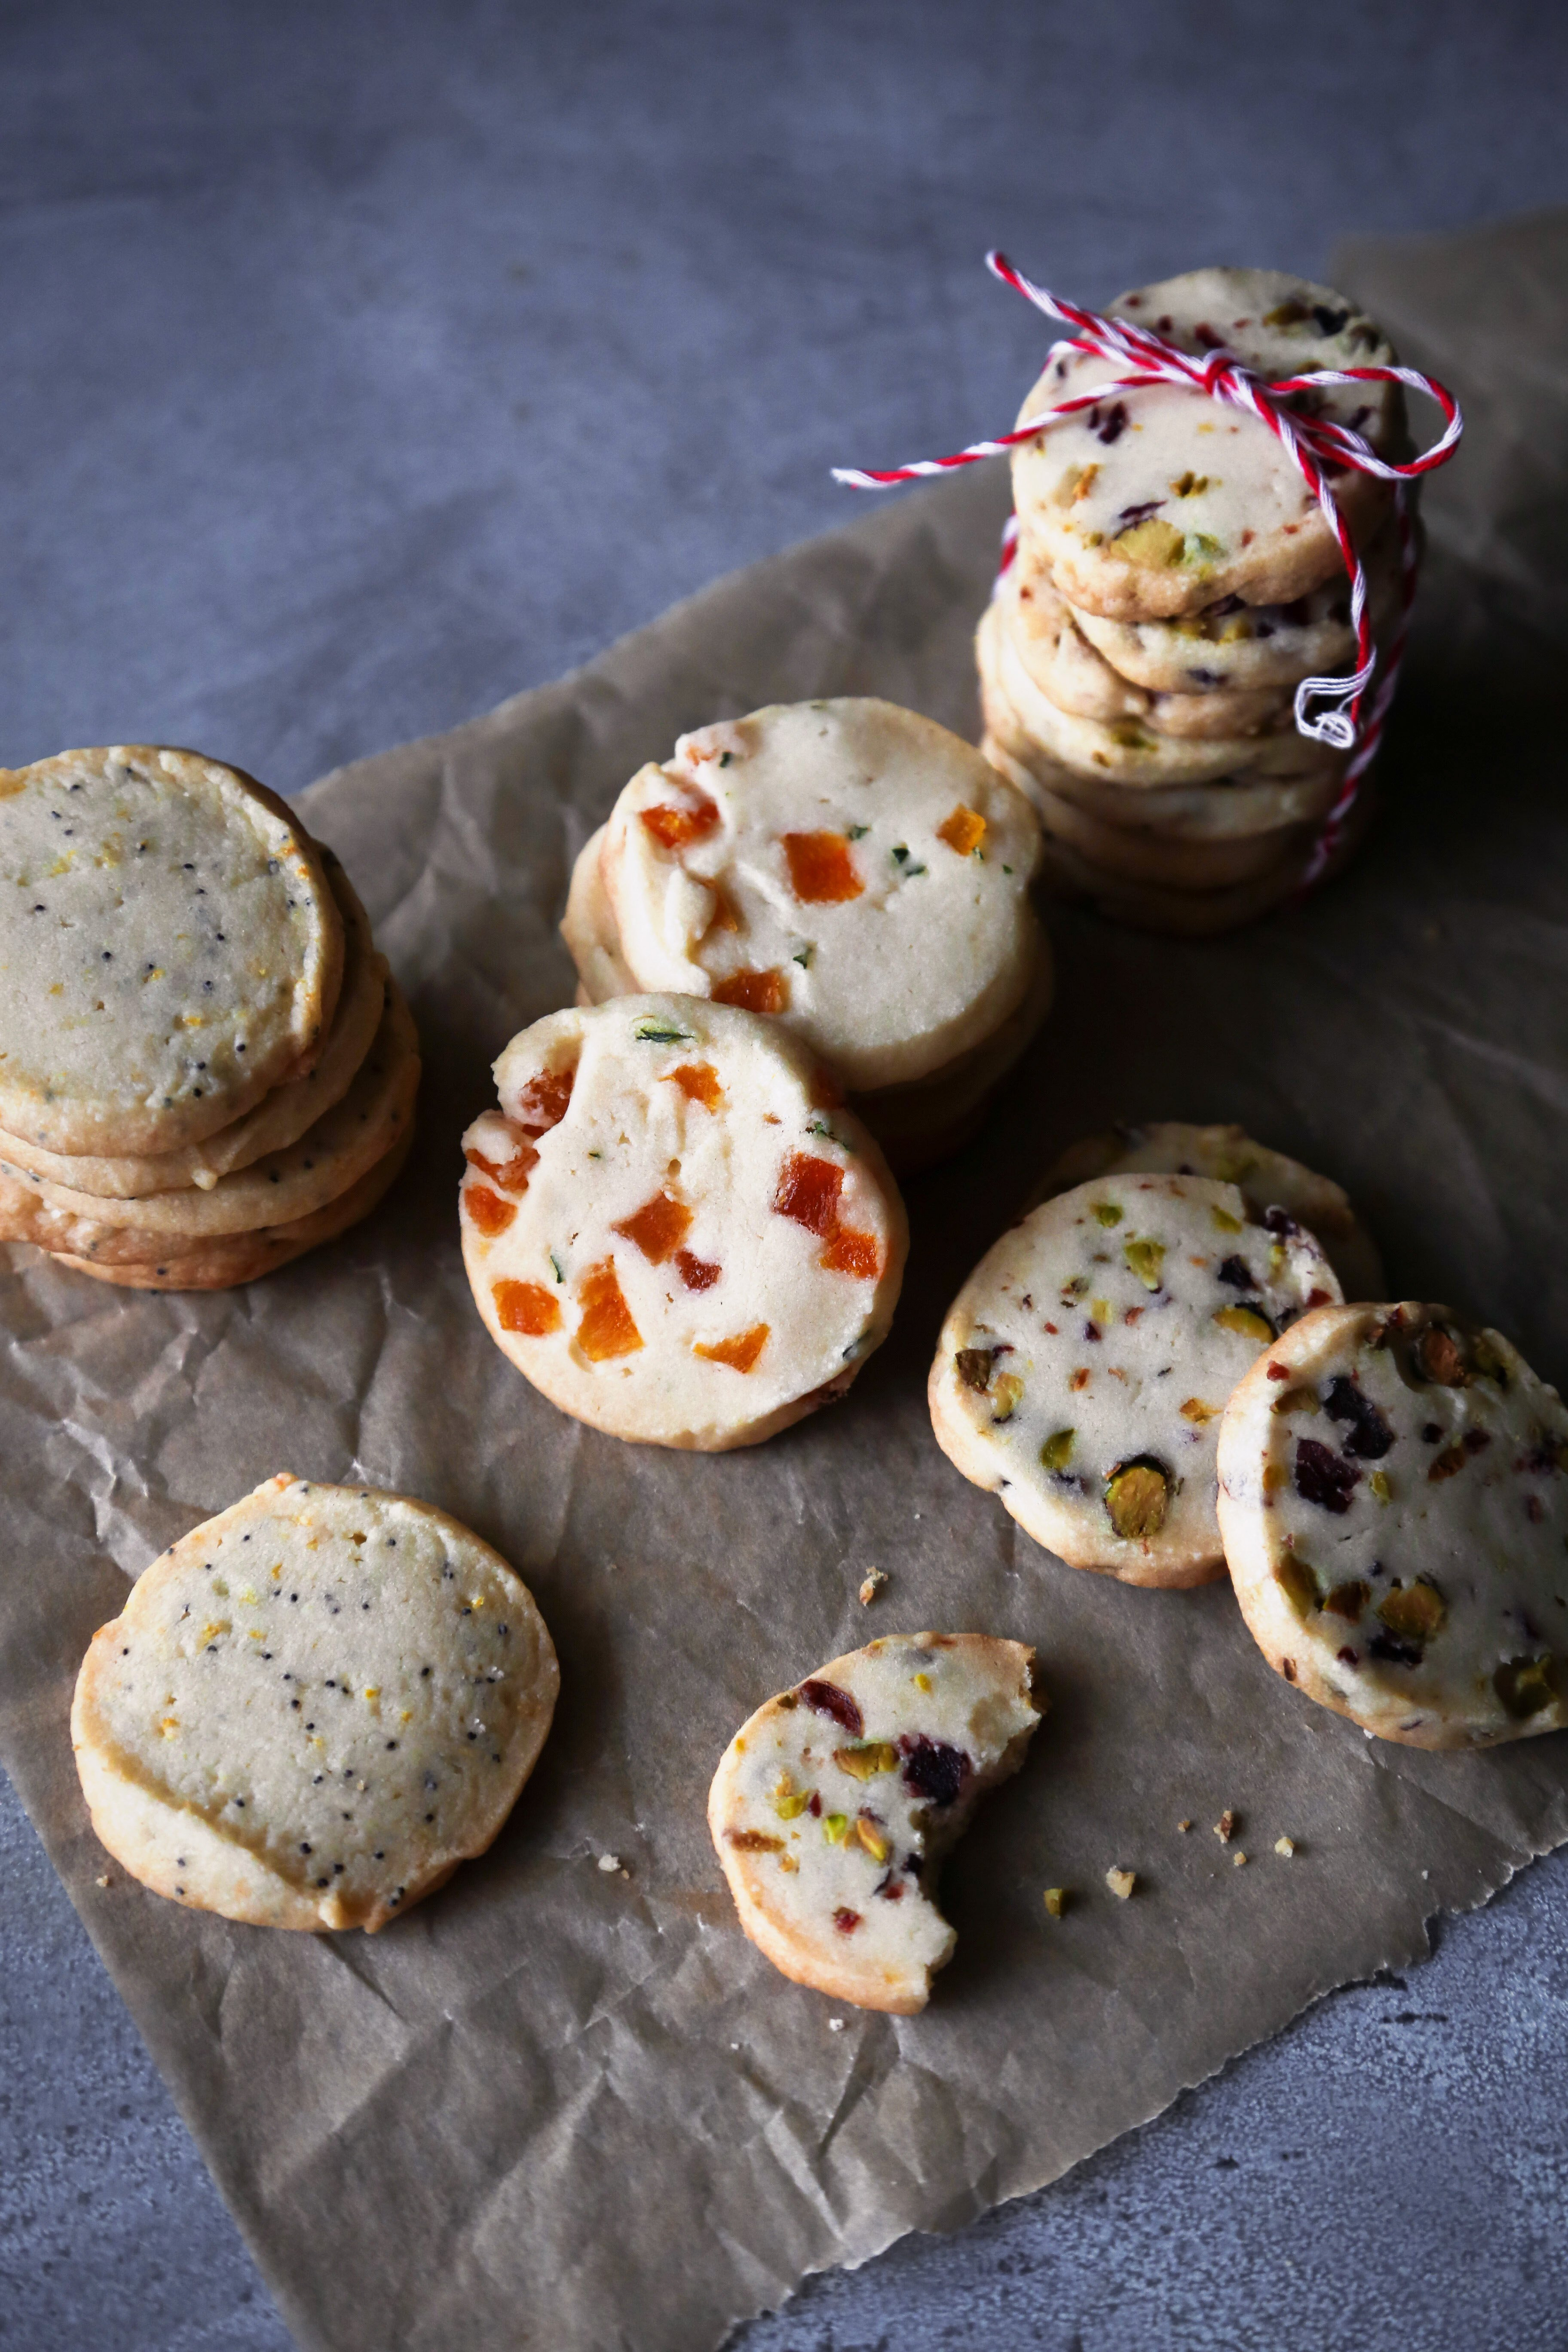 Gluten-Free Icebox Cookies | Refined Sugar Free Shortbread with a Variety of Mix-Ins.